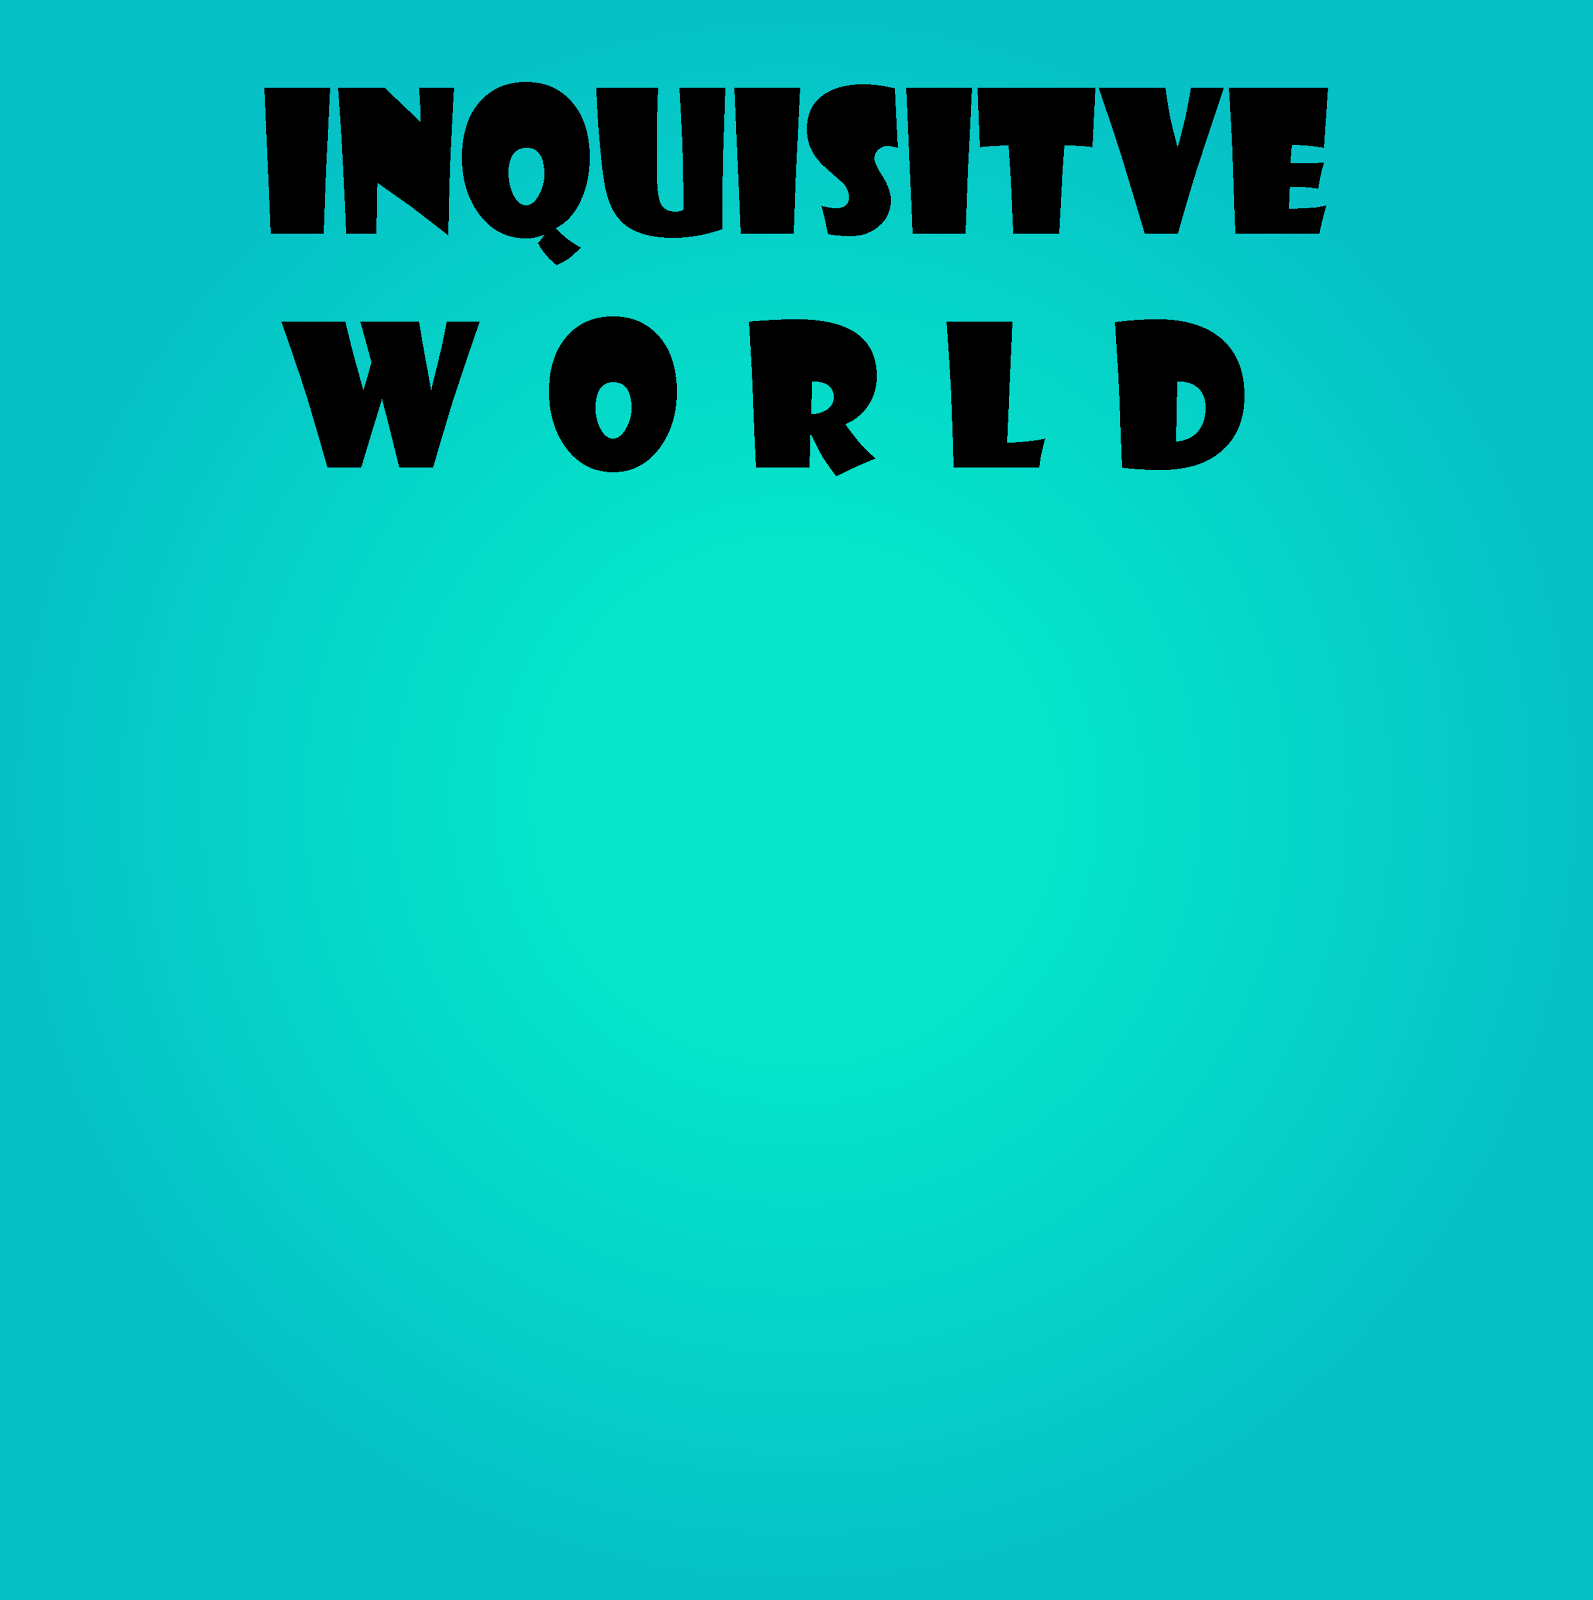 Inquisitive World